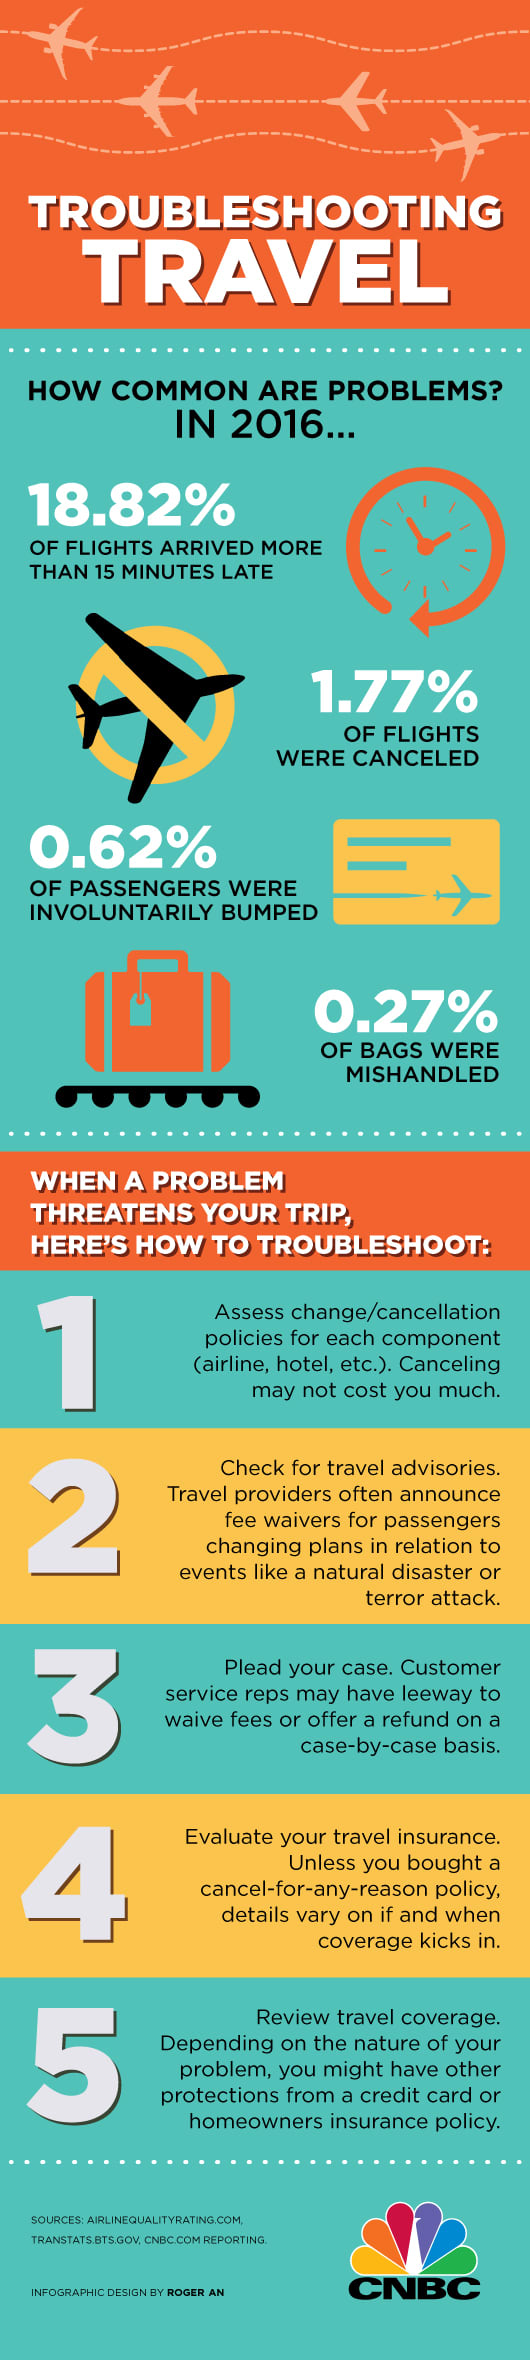 Travel troubleshooting infographic